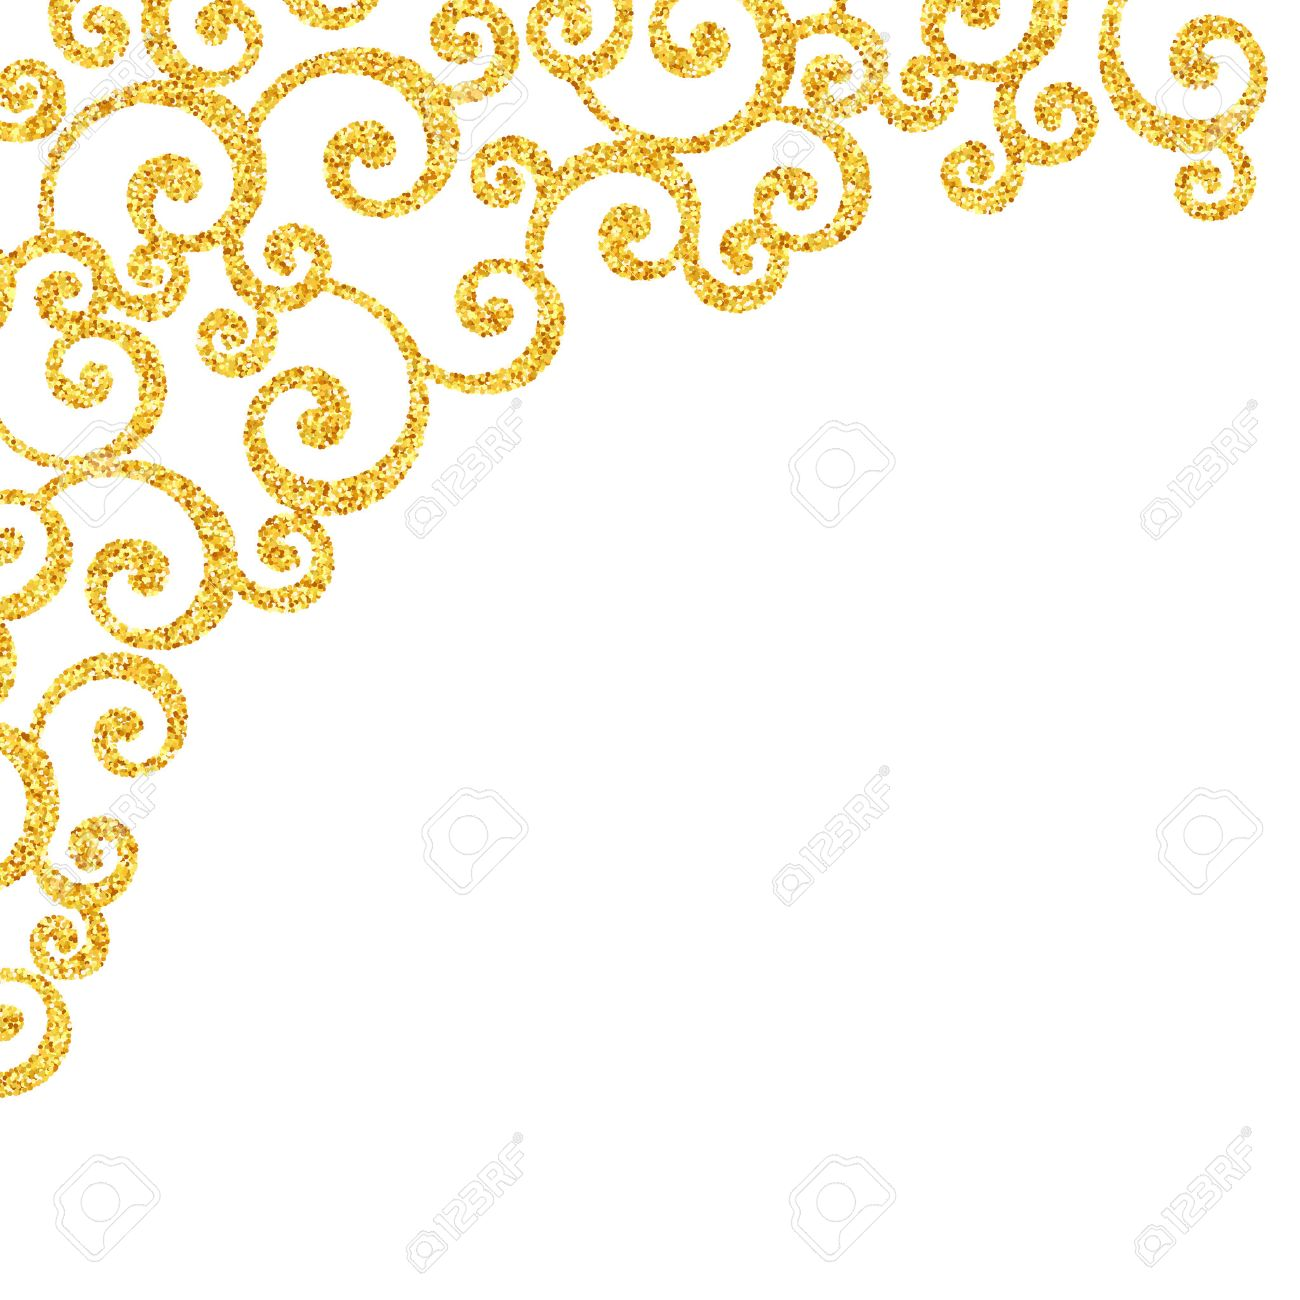 vector gold glitter swirl pattern golden sparkles on white